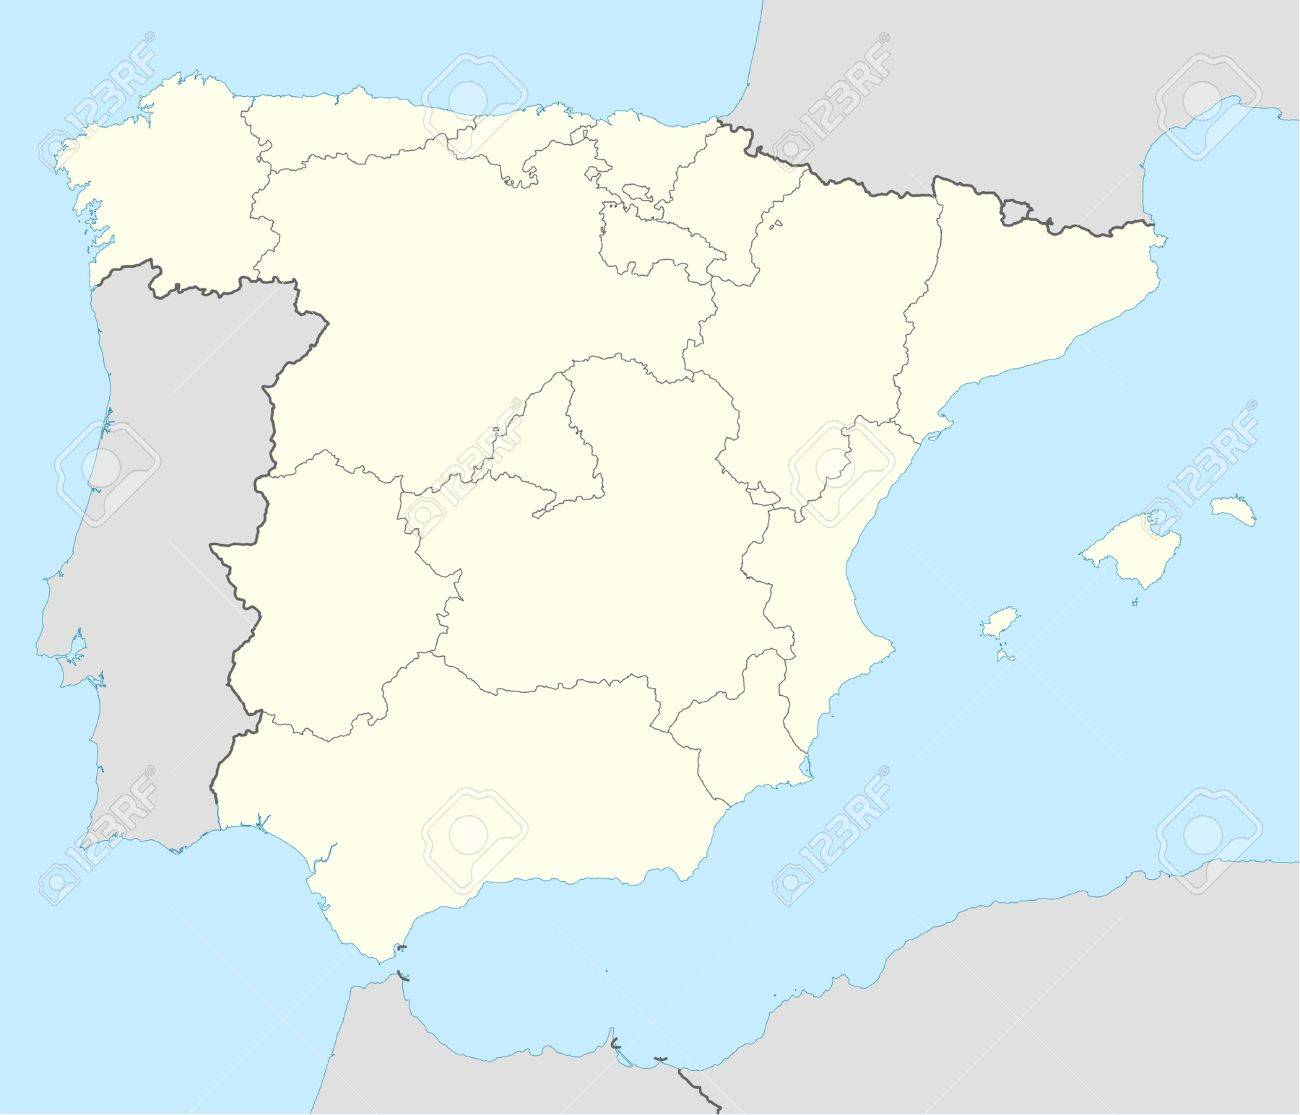 Map Of Spain With States.Illustrated Map Of The Country Of Spain Showing The State Borders